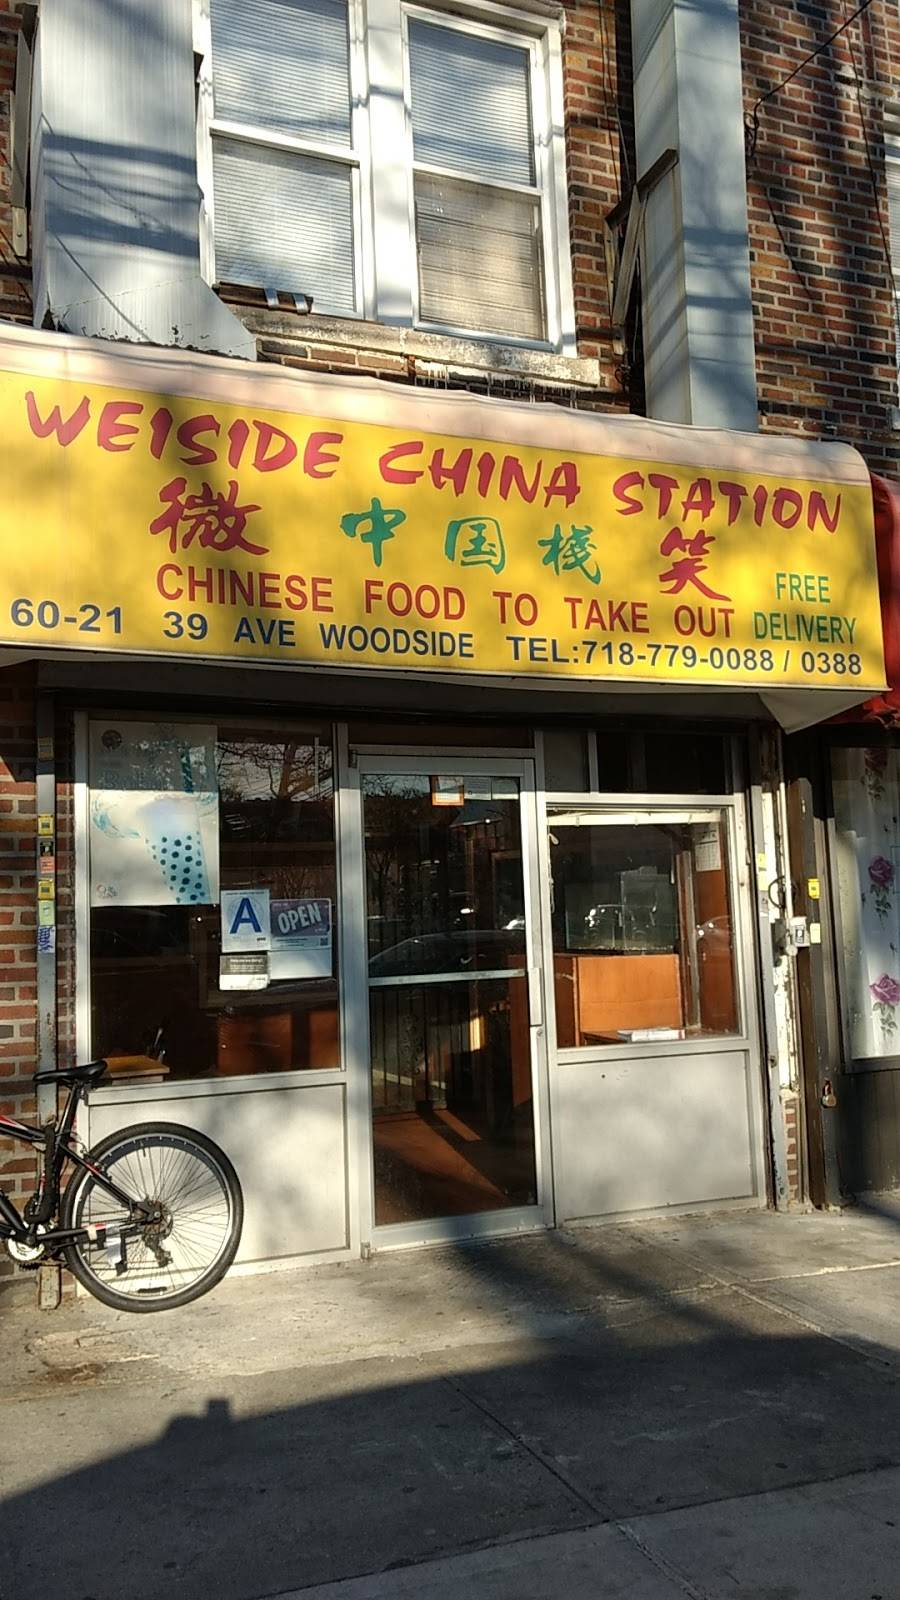 Weiside China Station | restaurant | 60-21 39th Ave, Woodside, NY 11377, USA | 7187790088 OR +1 718-779-0088